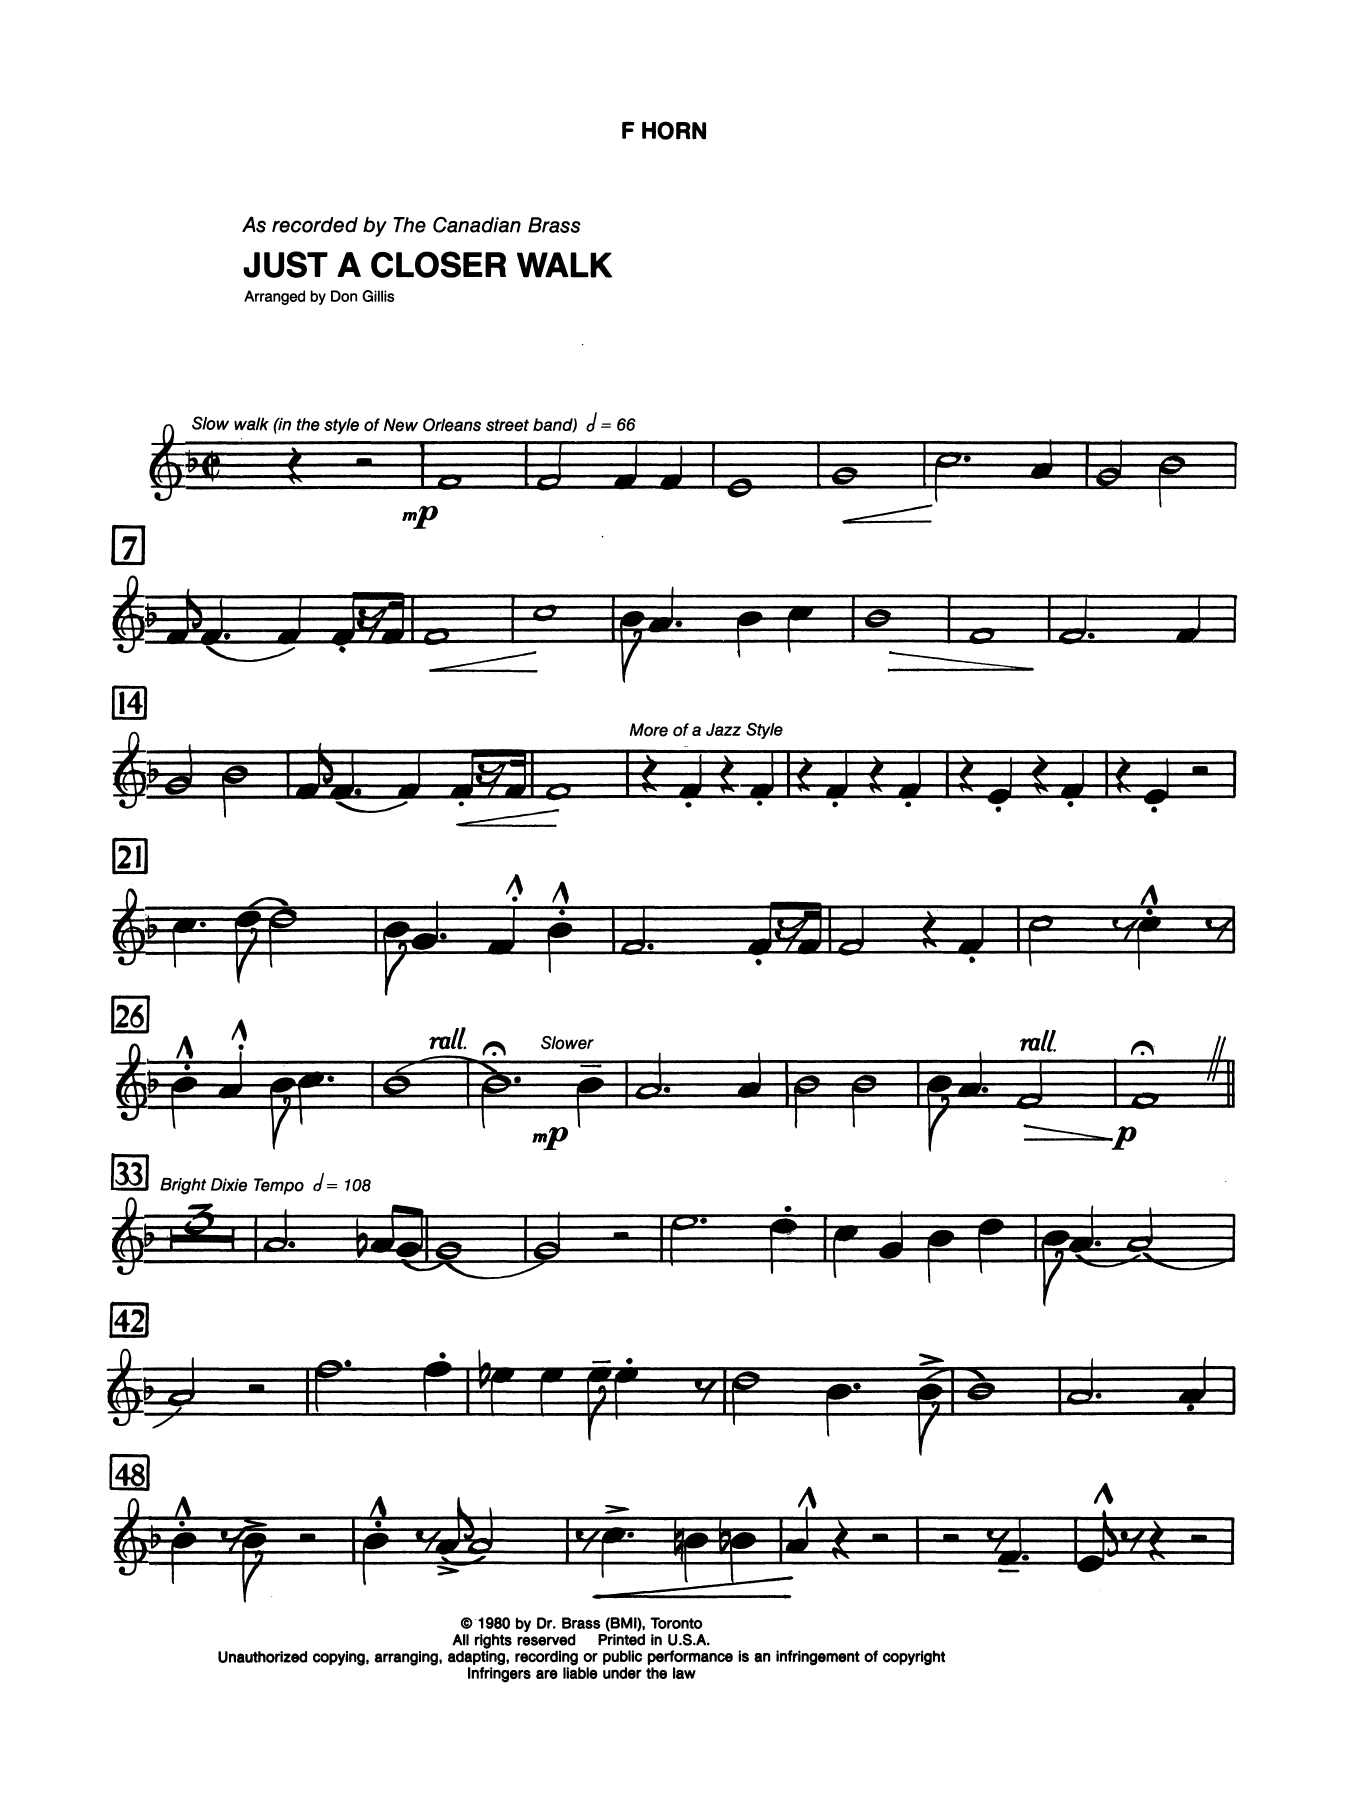 Just A Closer Walk With Thee - Horn in F Sheet Music